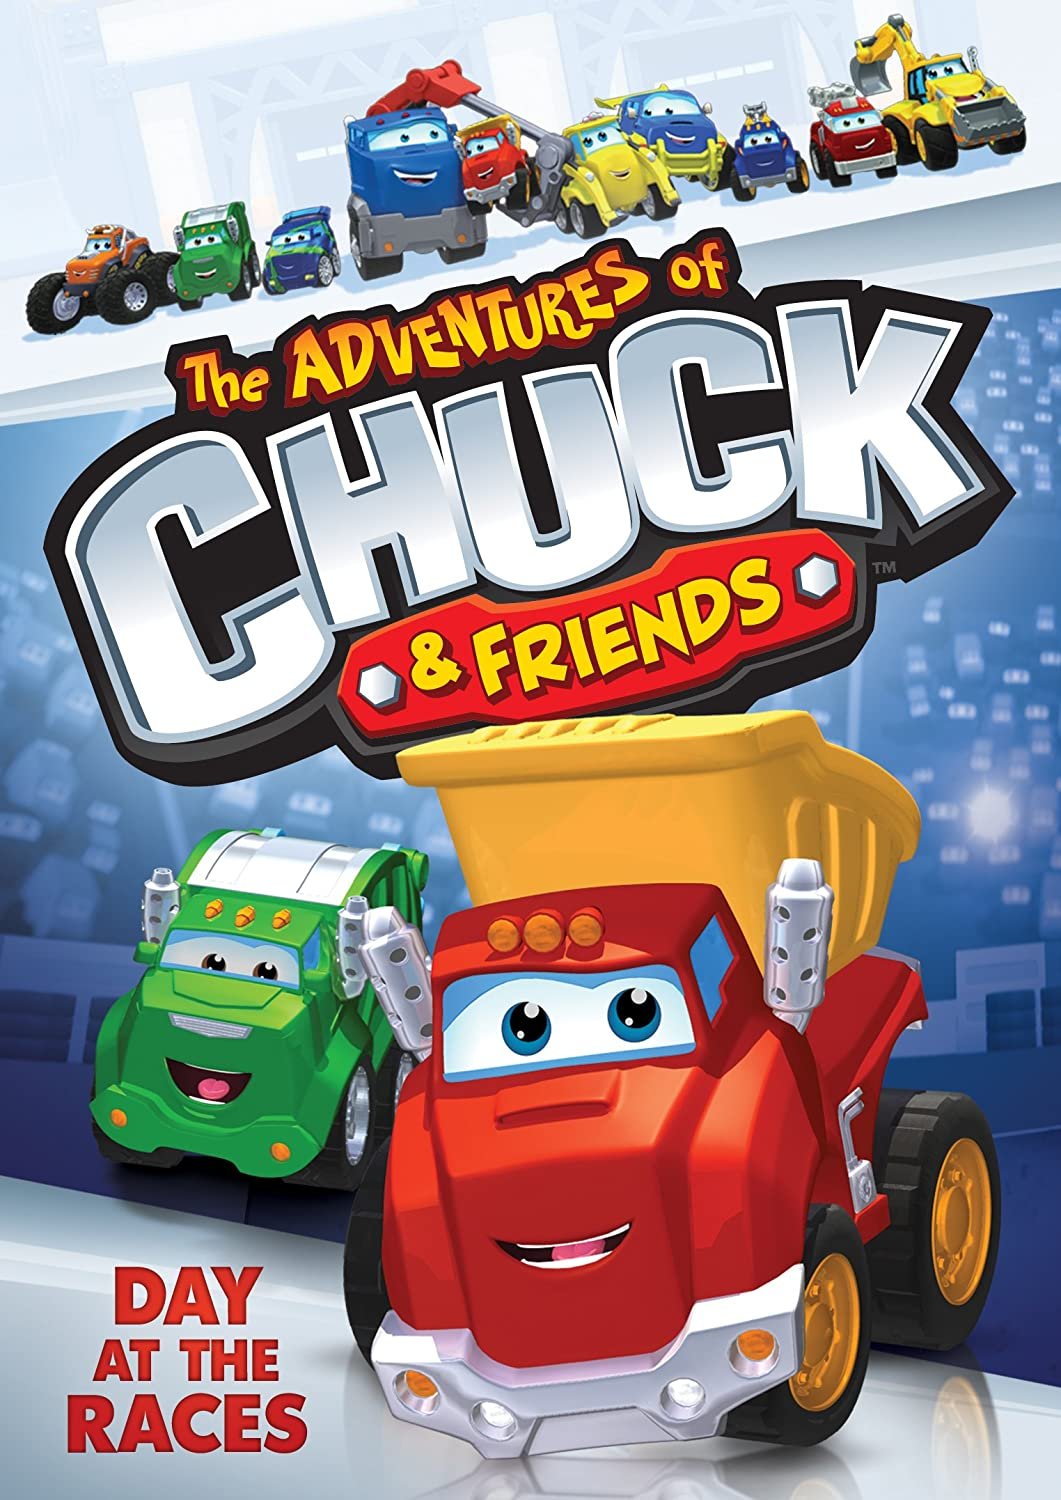 https://www.shoutfactory.com/kids/kids-animation/the-adventures-of-chuck-friends-day-at-the-races